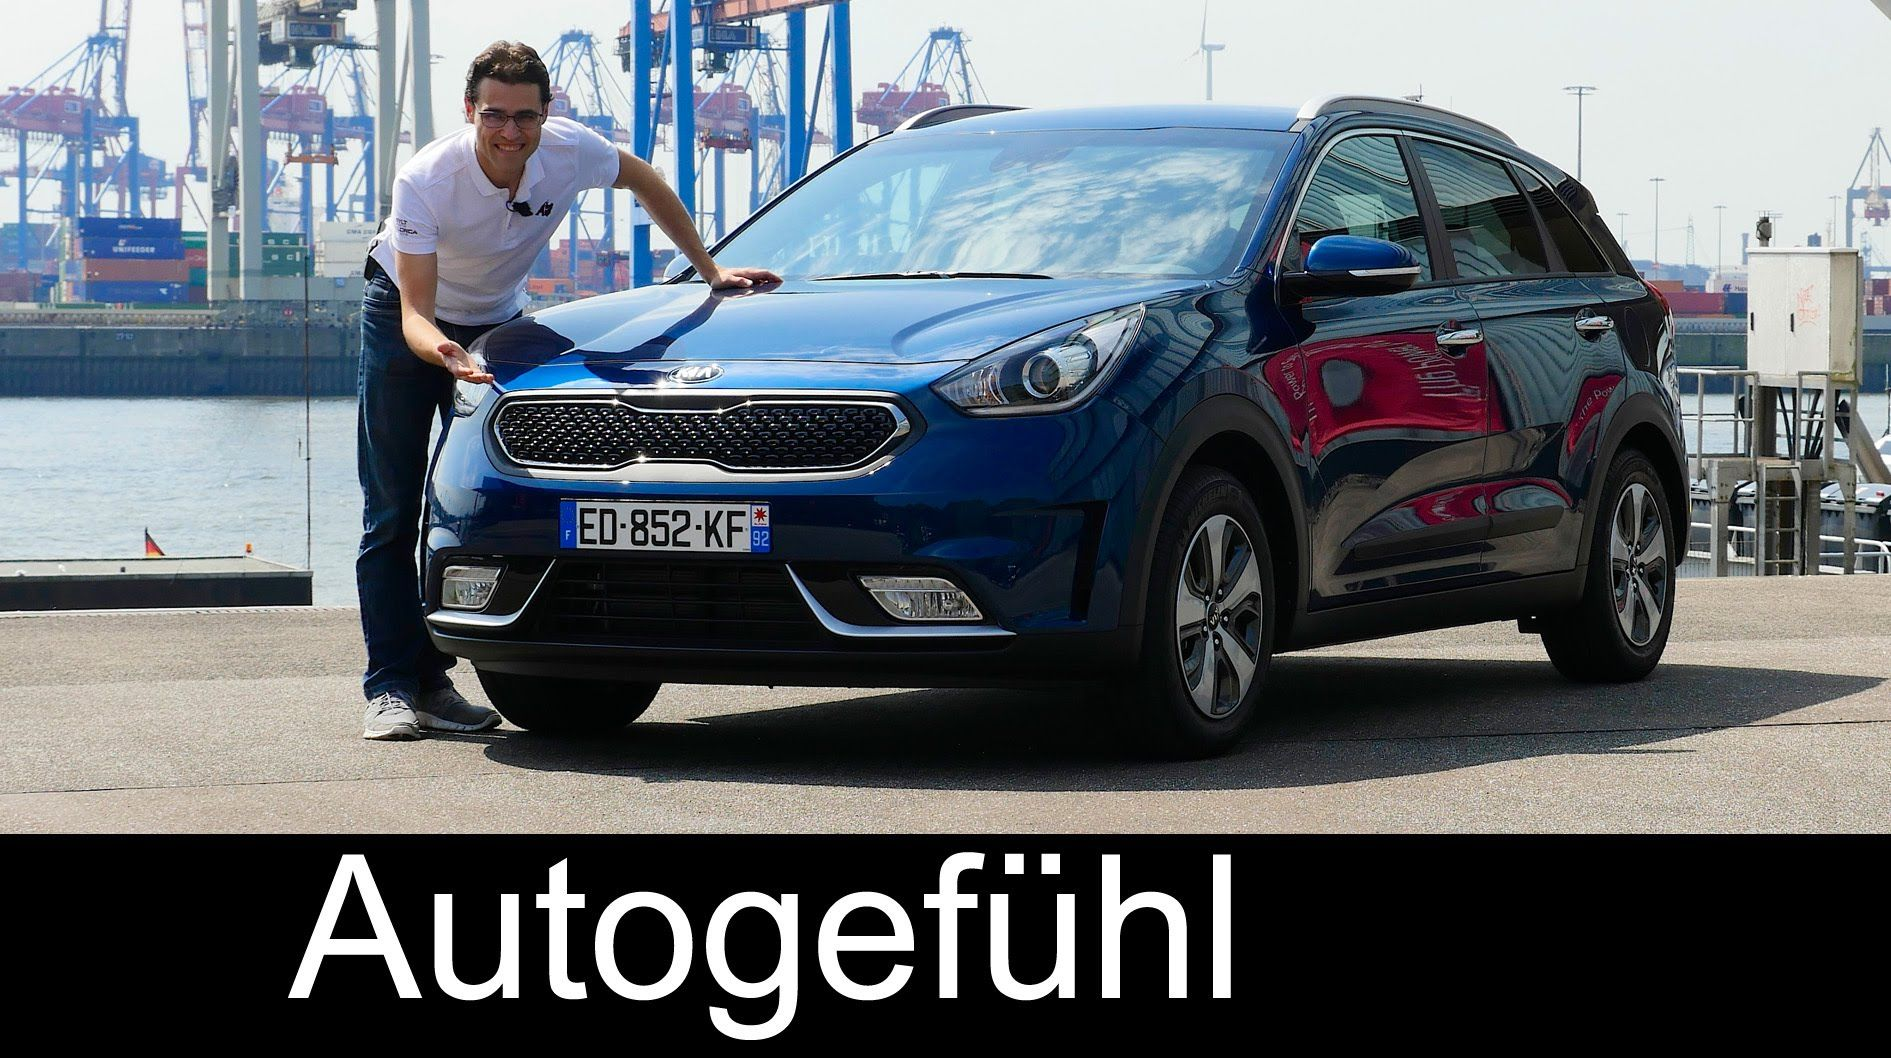 Kia Niro Full Review Test Driven All New Hybrid Crossover Neu 2017 Aut Hybrid Crossover Kia Driving Test